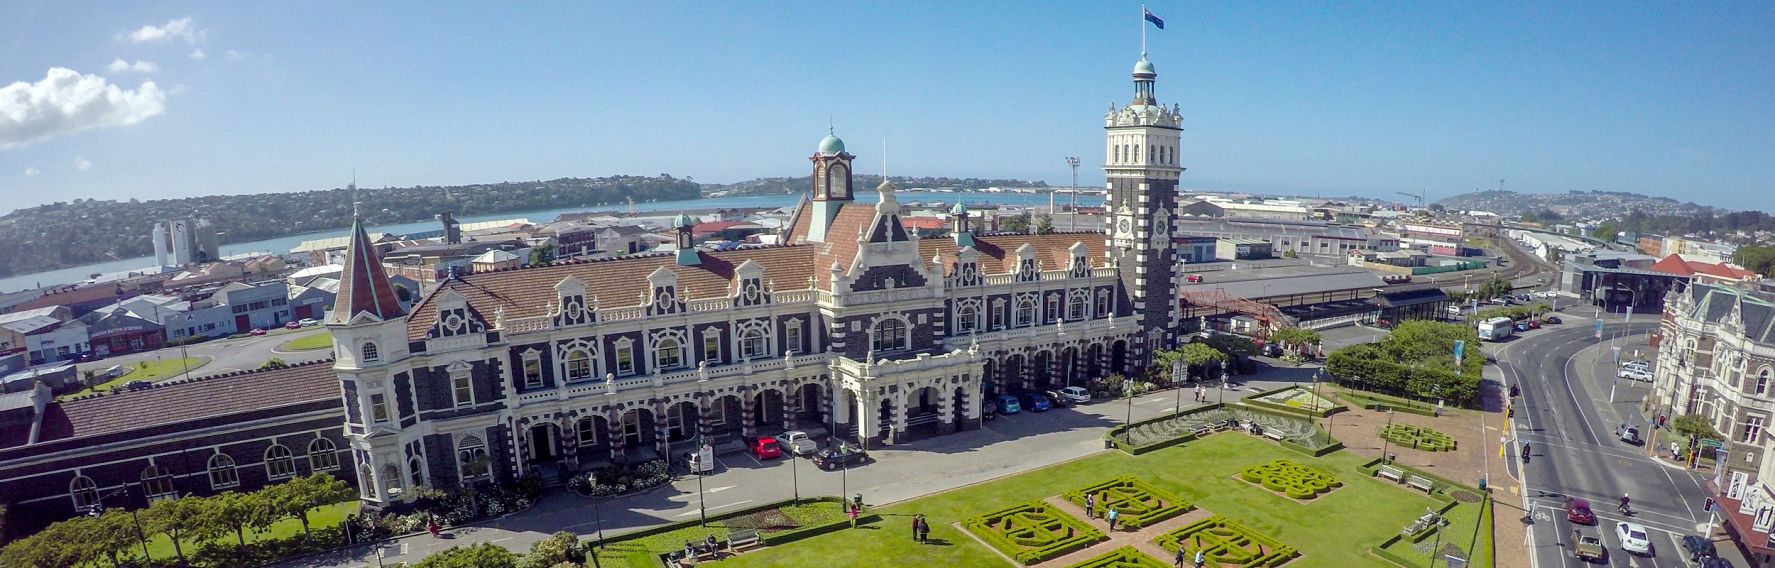 Aerial view of the Dunedin Railway Station